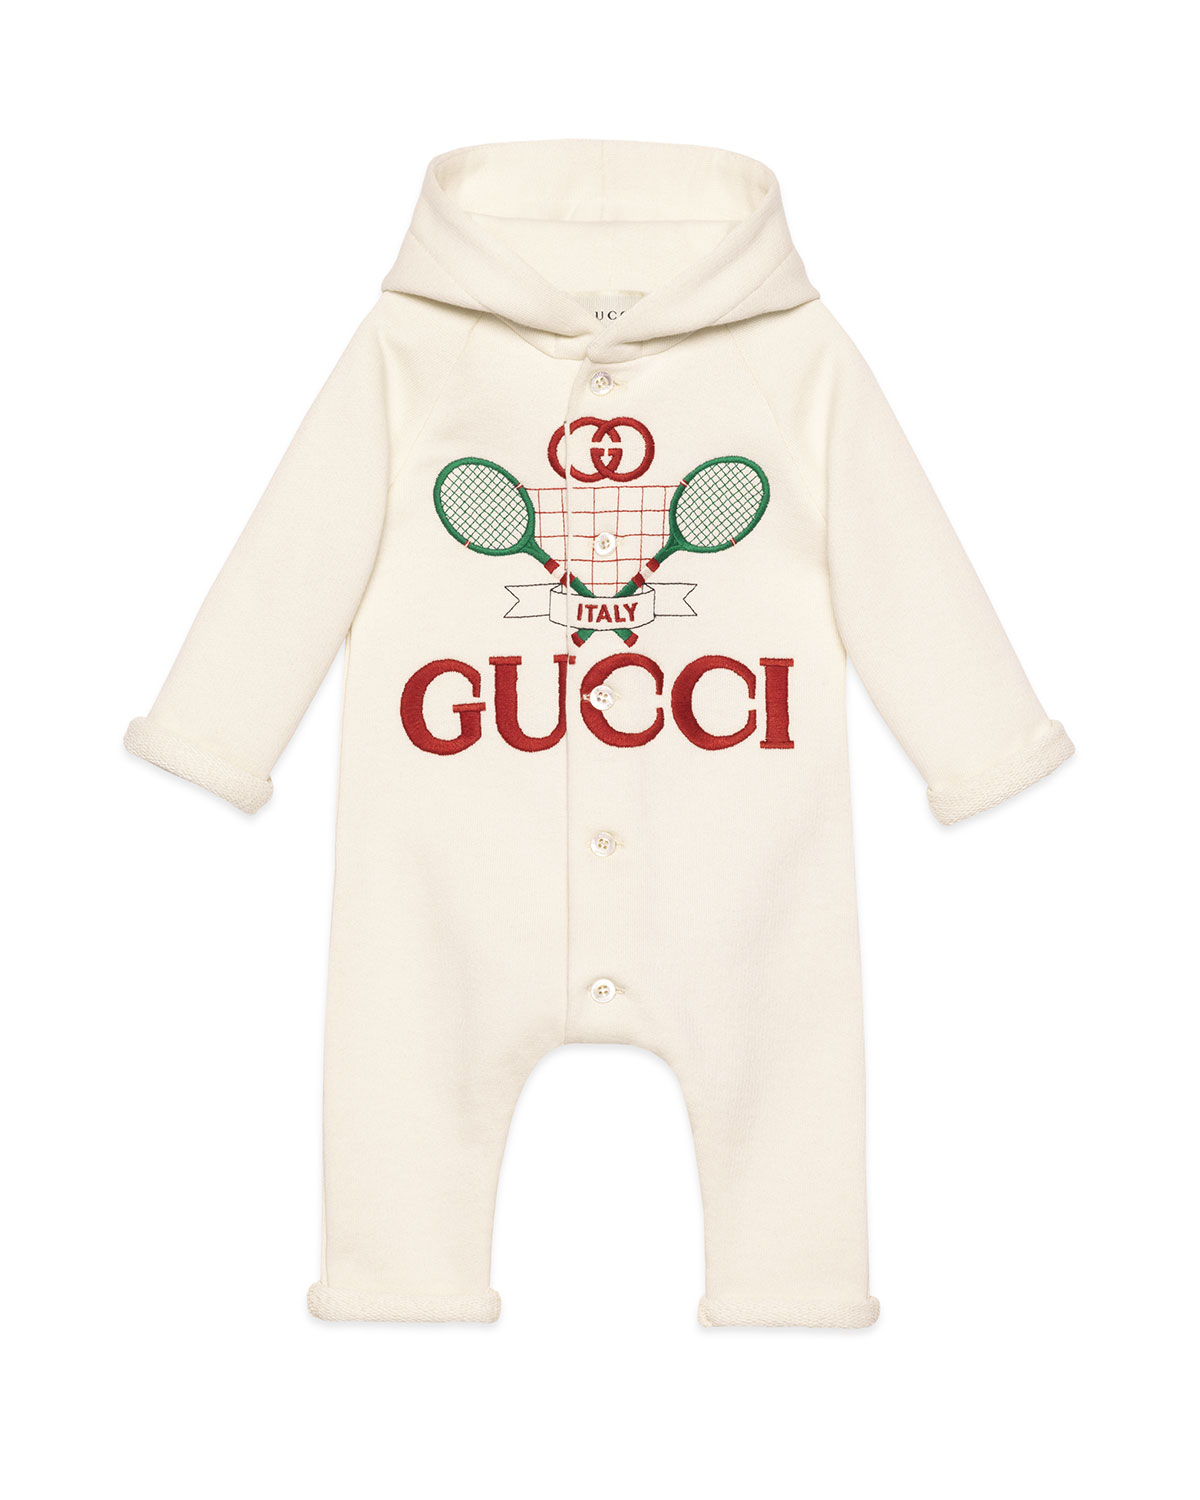 Racket Logo Embroidered Hooded Coverall, Size 3 24 Months by Gucci